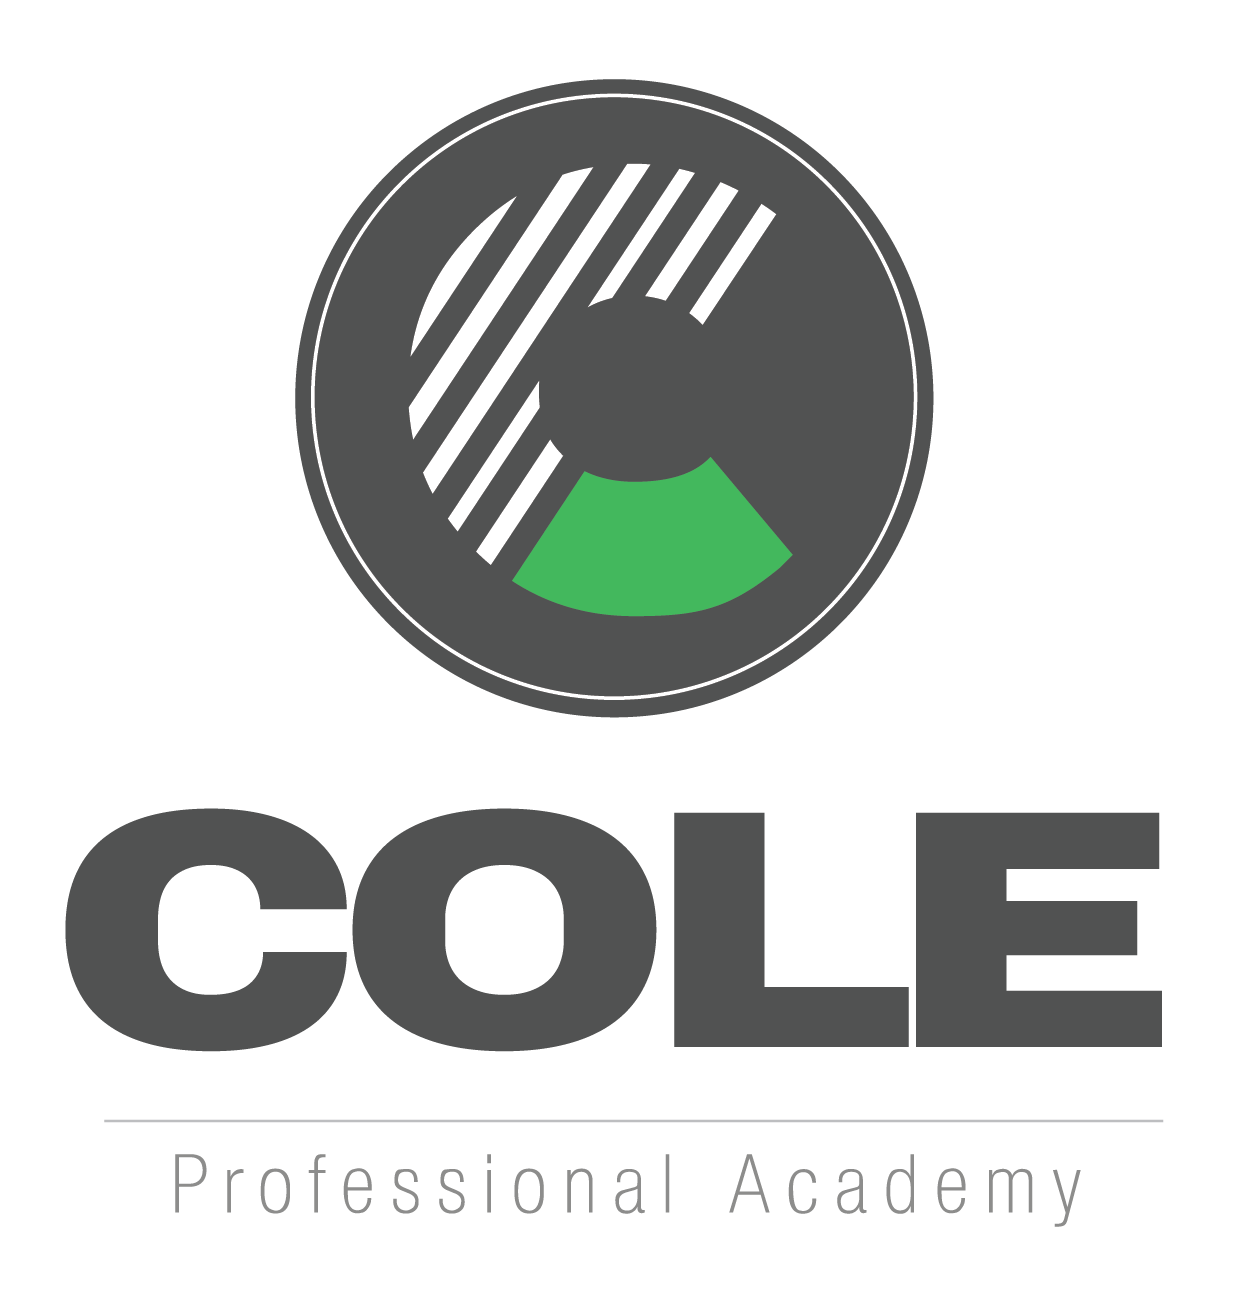 Symbol for Cole Professional Academy. The symbol is a black solid circle. Inside the circle is a Capital C that has the bottom fourth green. The remaining portion of the C is white with black strips.  Underneath in black is the word COLE in capital and bold face. Underneath this is a line and written underneath in a small font are the words Professional Academy